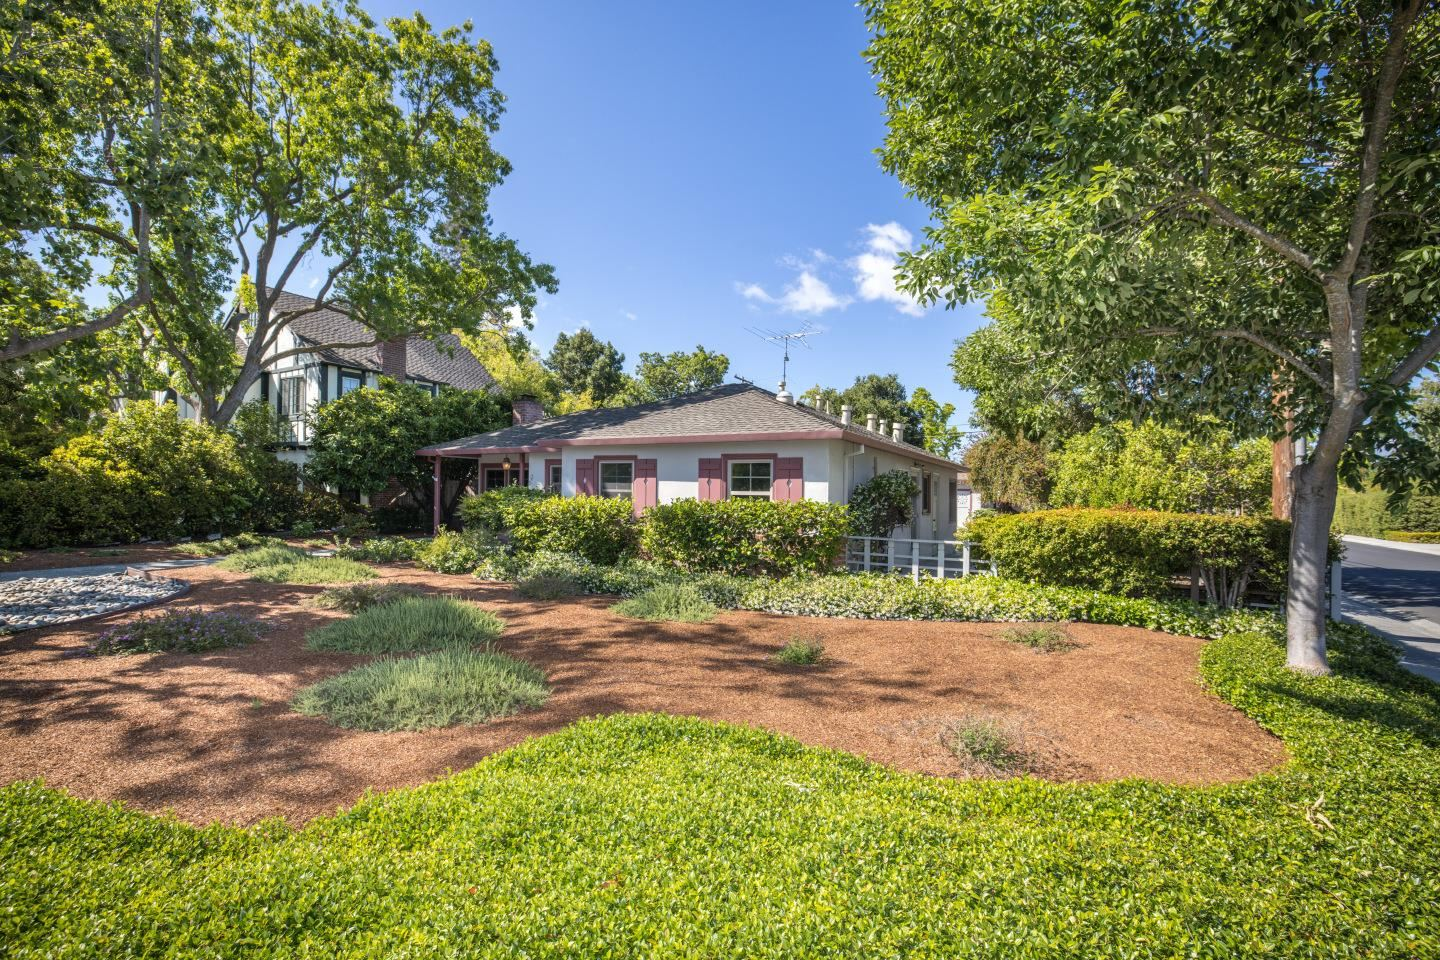 Photo for 2800 South Court, PALO ALTO, CA 94306 (MLS # ML81848252)